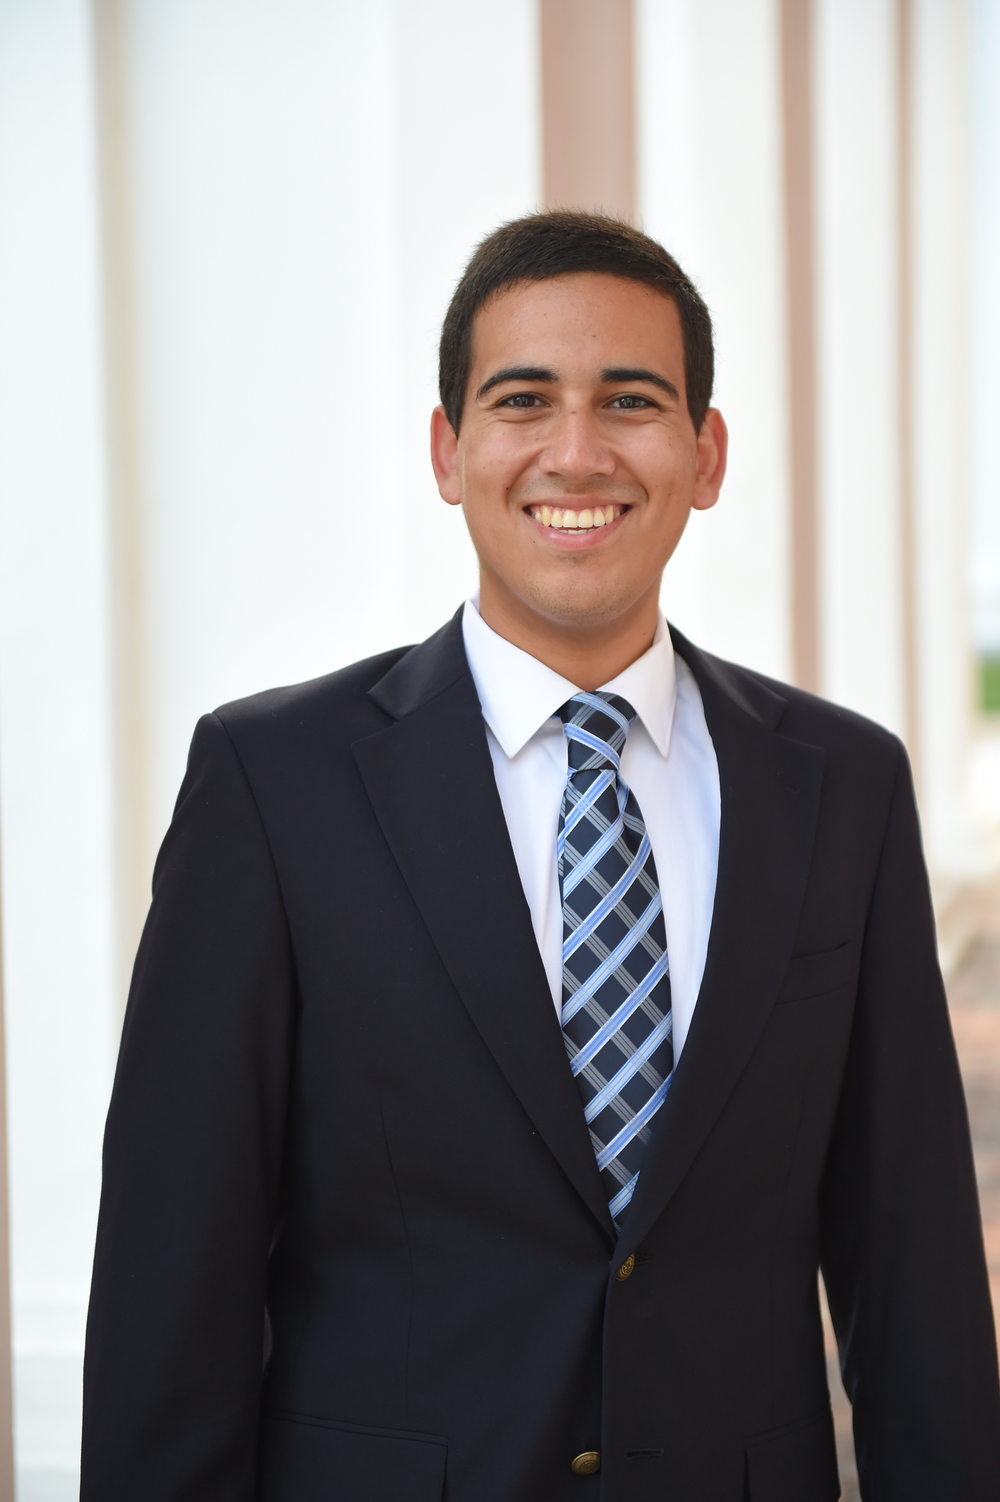 KEVIN ORTIZ '16 POLITICAL ANALYST